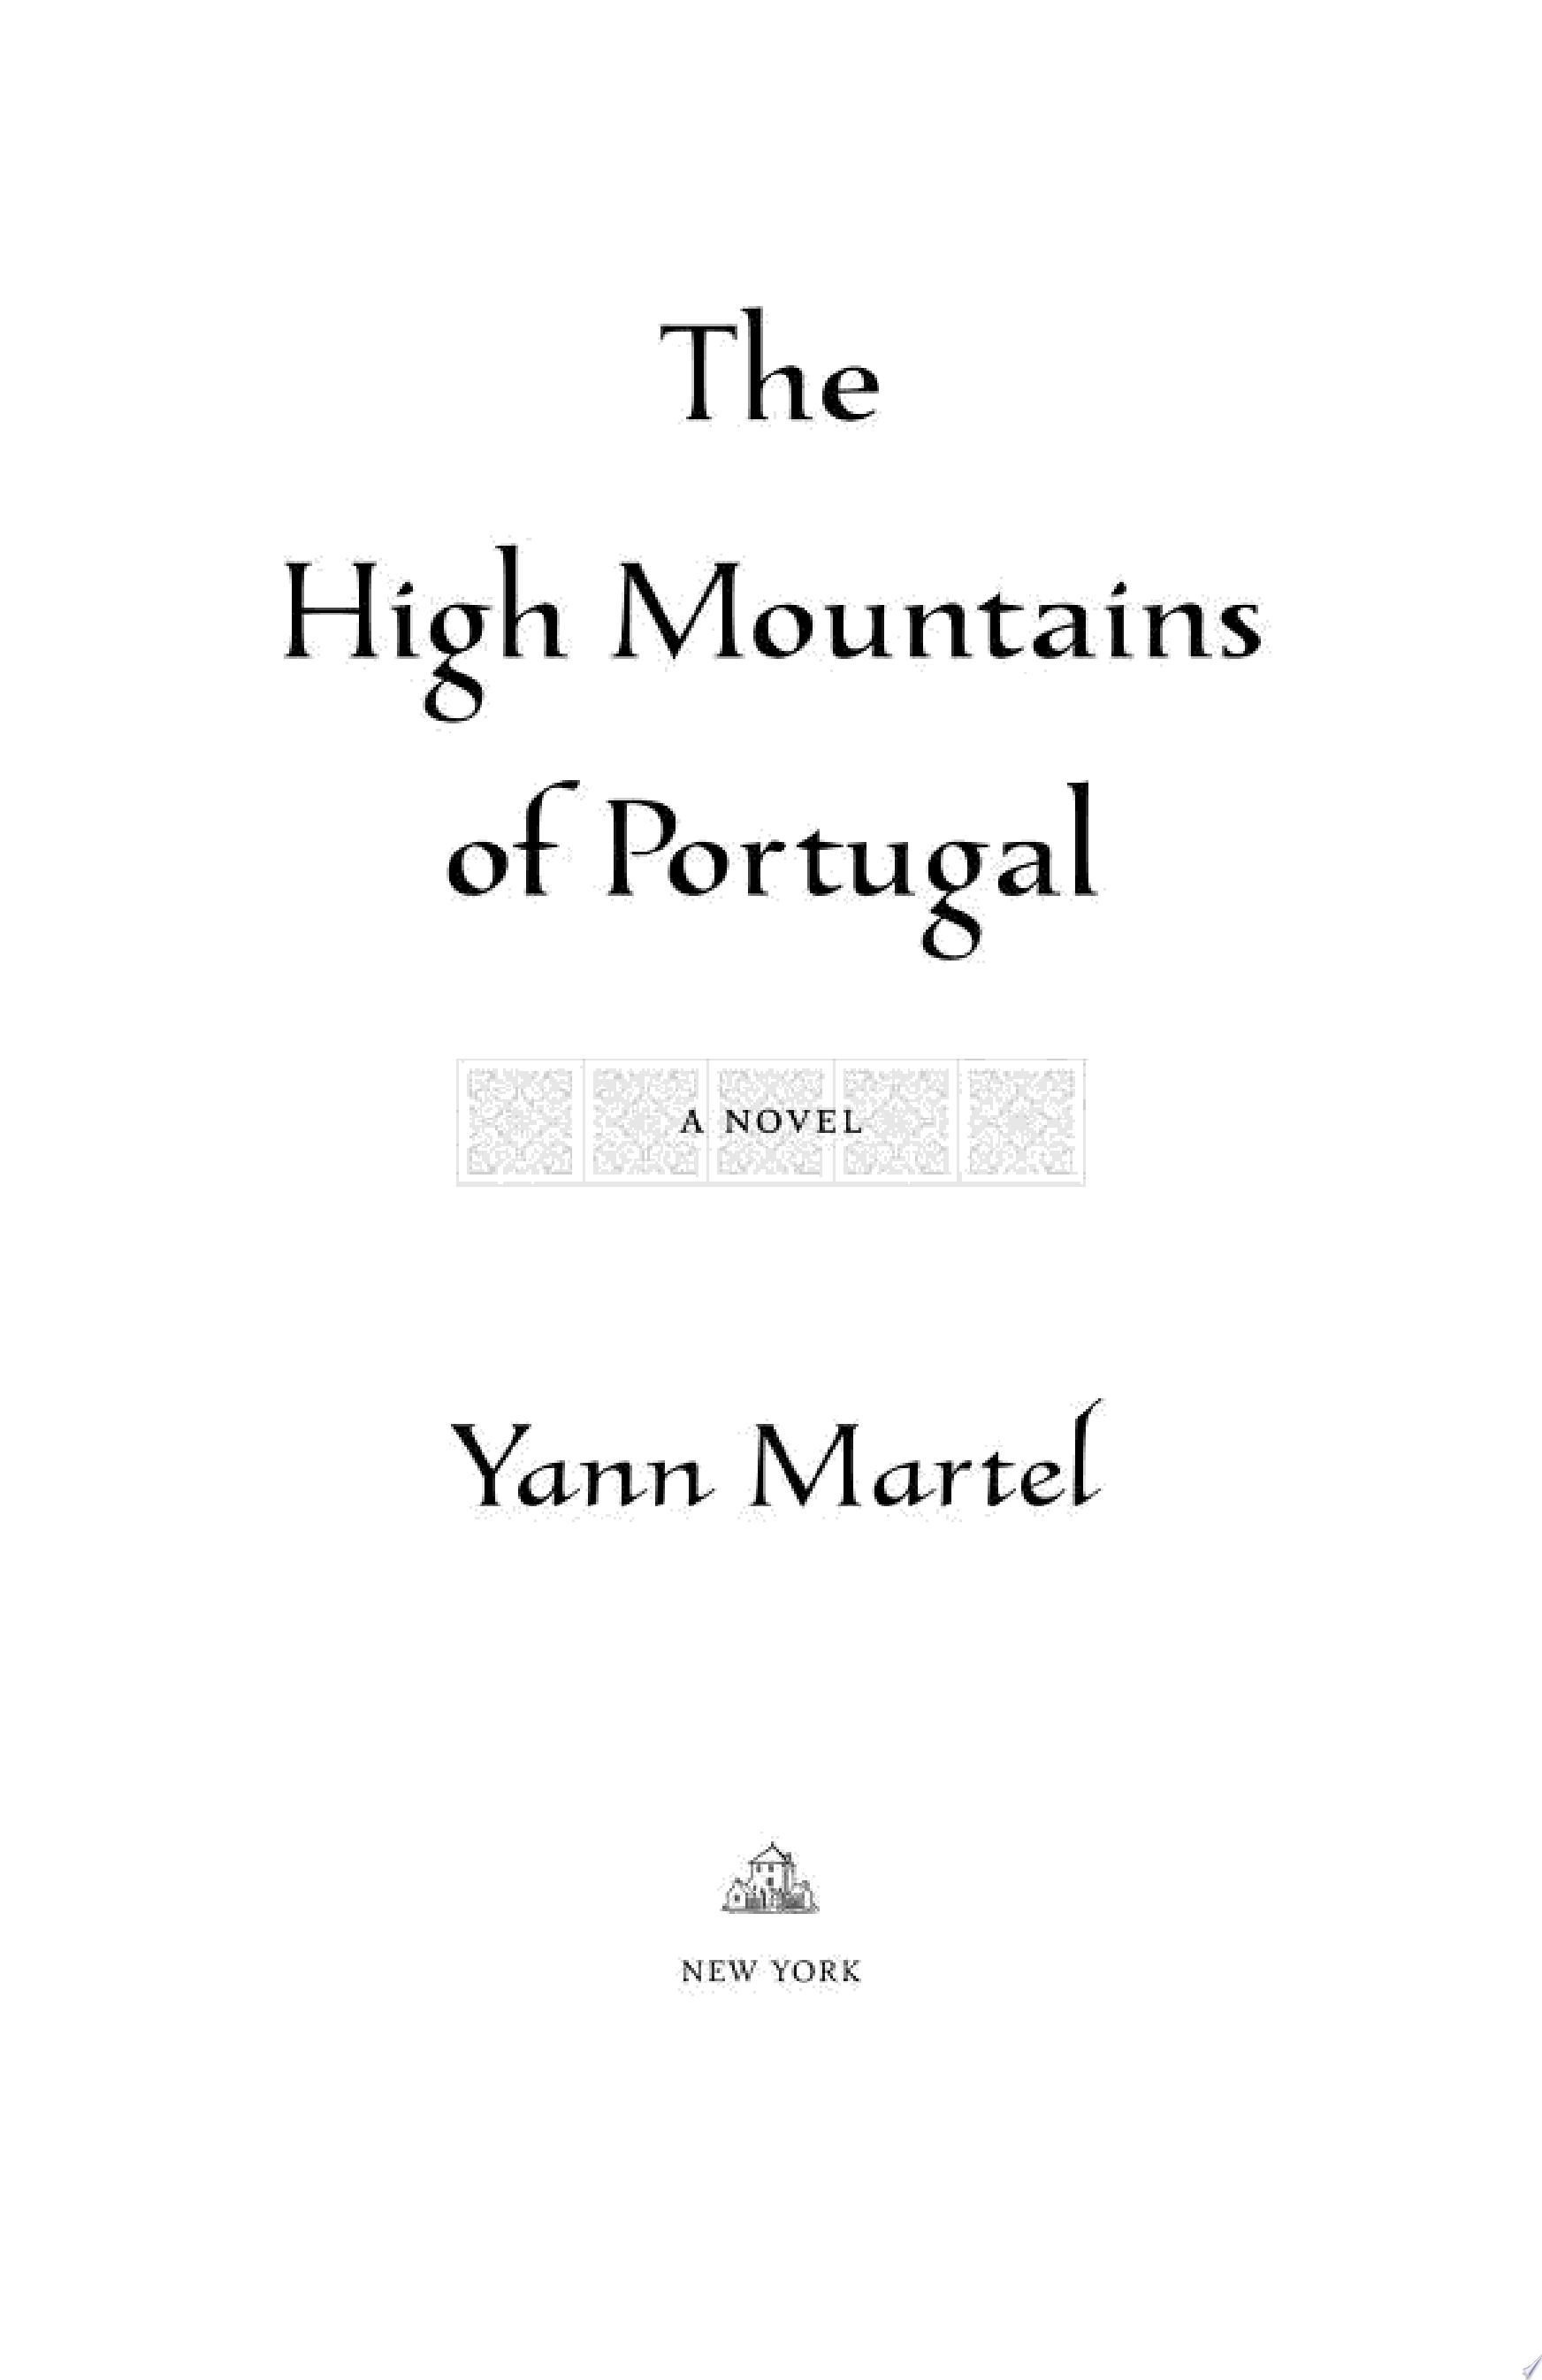 The High Mountains of Portugal